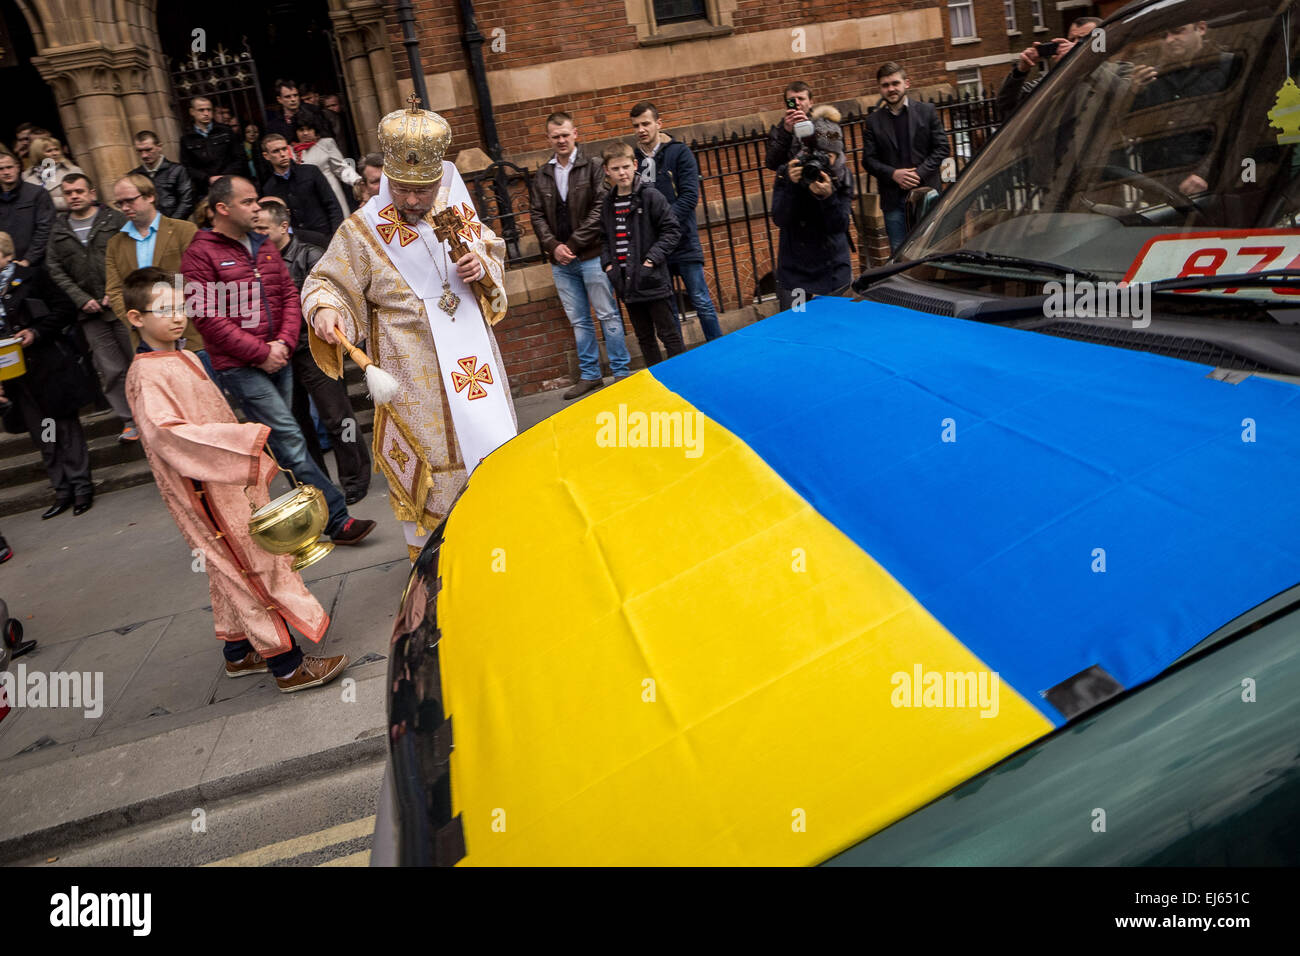 London, UK. 22nd March, 2015. Blessing of cars for Ukrainian ...